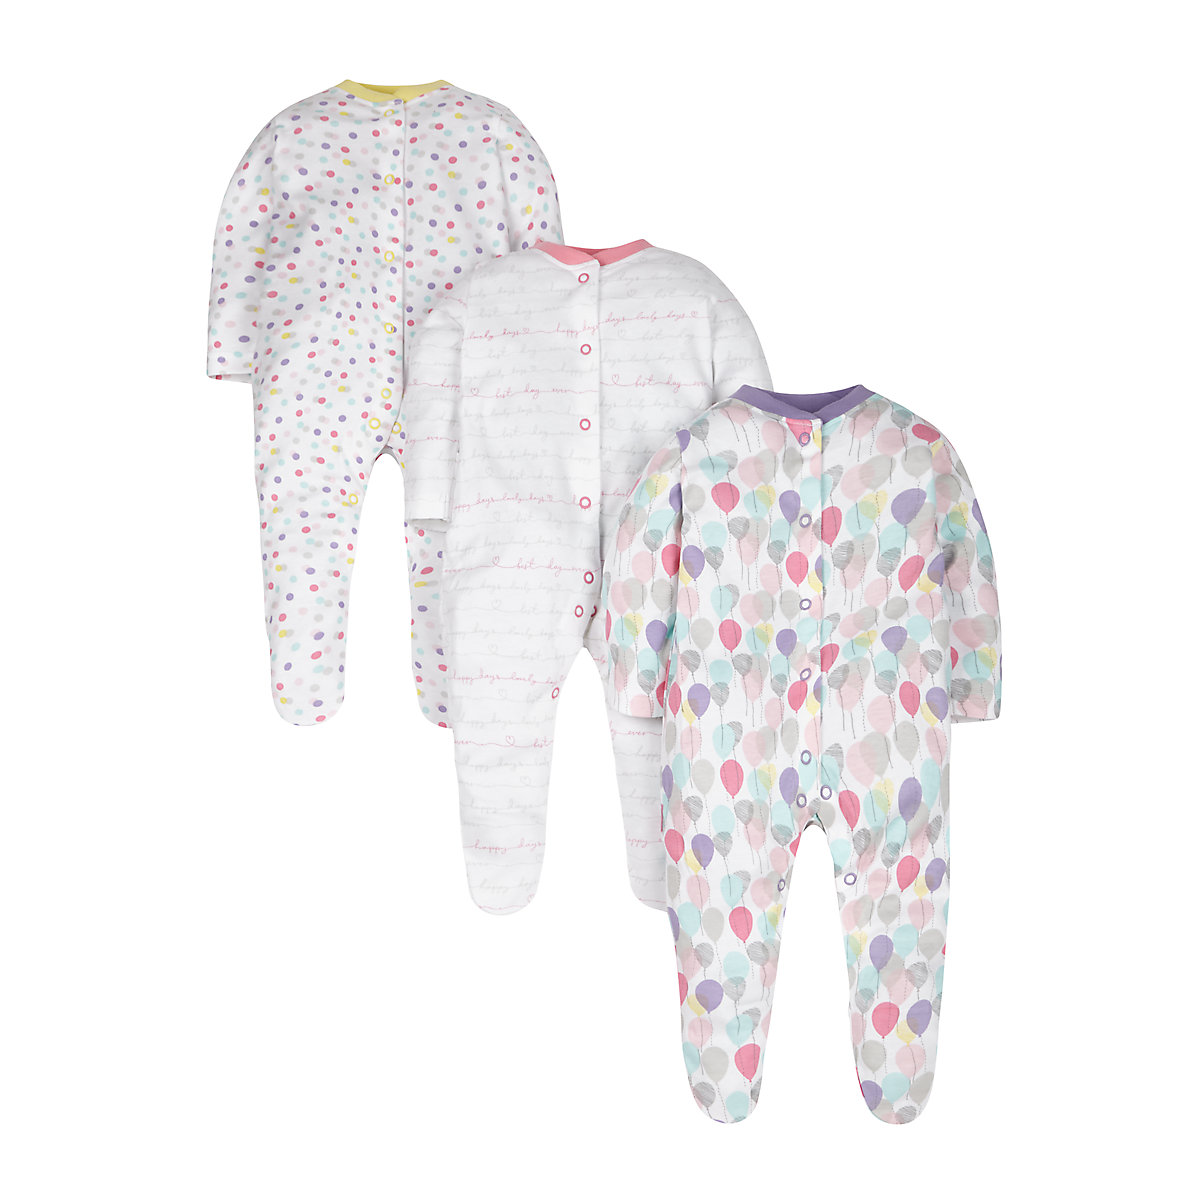 Balloons Sleepsuits - 3 Pack